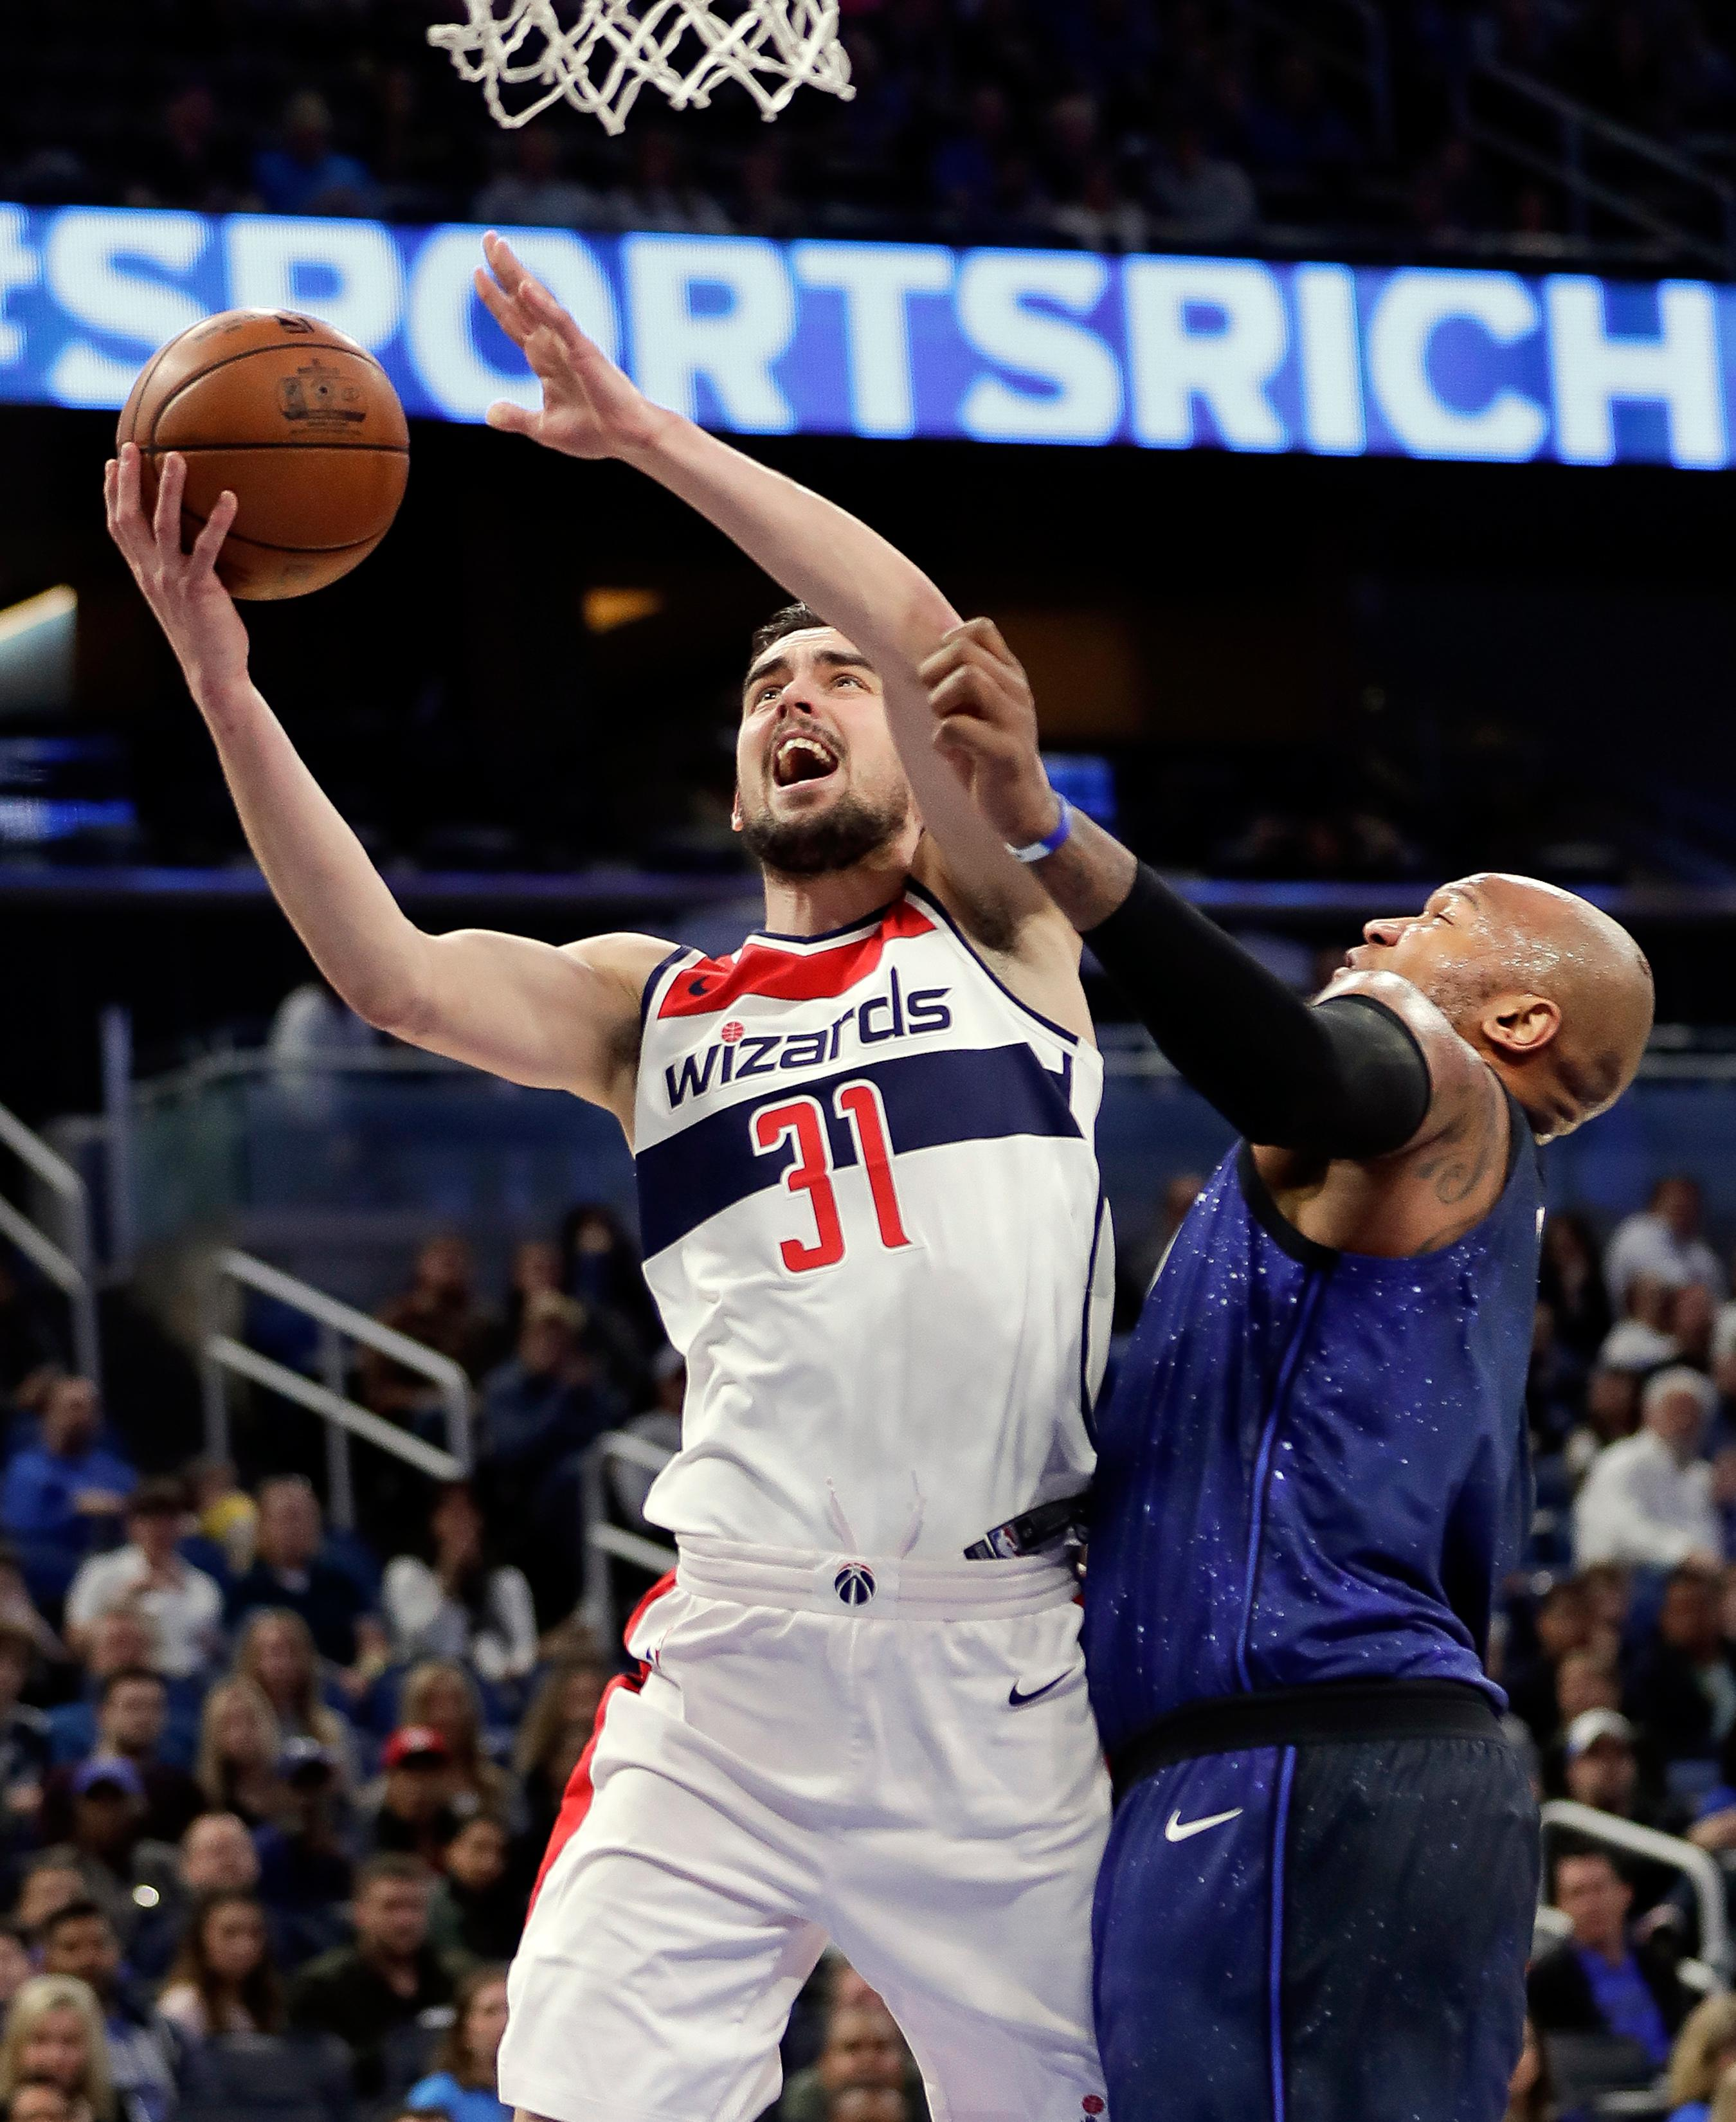 Washington Wizards' Tomas Satoransky (31) gets around Orlando Magic's Marreese Speights, right, for a shot during the first half of an NBA basketball game Saturday, Feb. 3, 2018, in Orlando, Fla. (AP Photo/John Raoux)